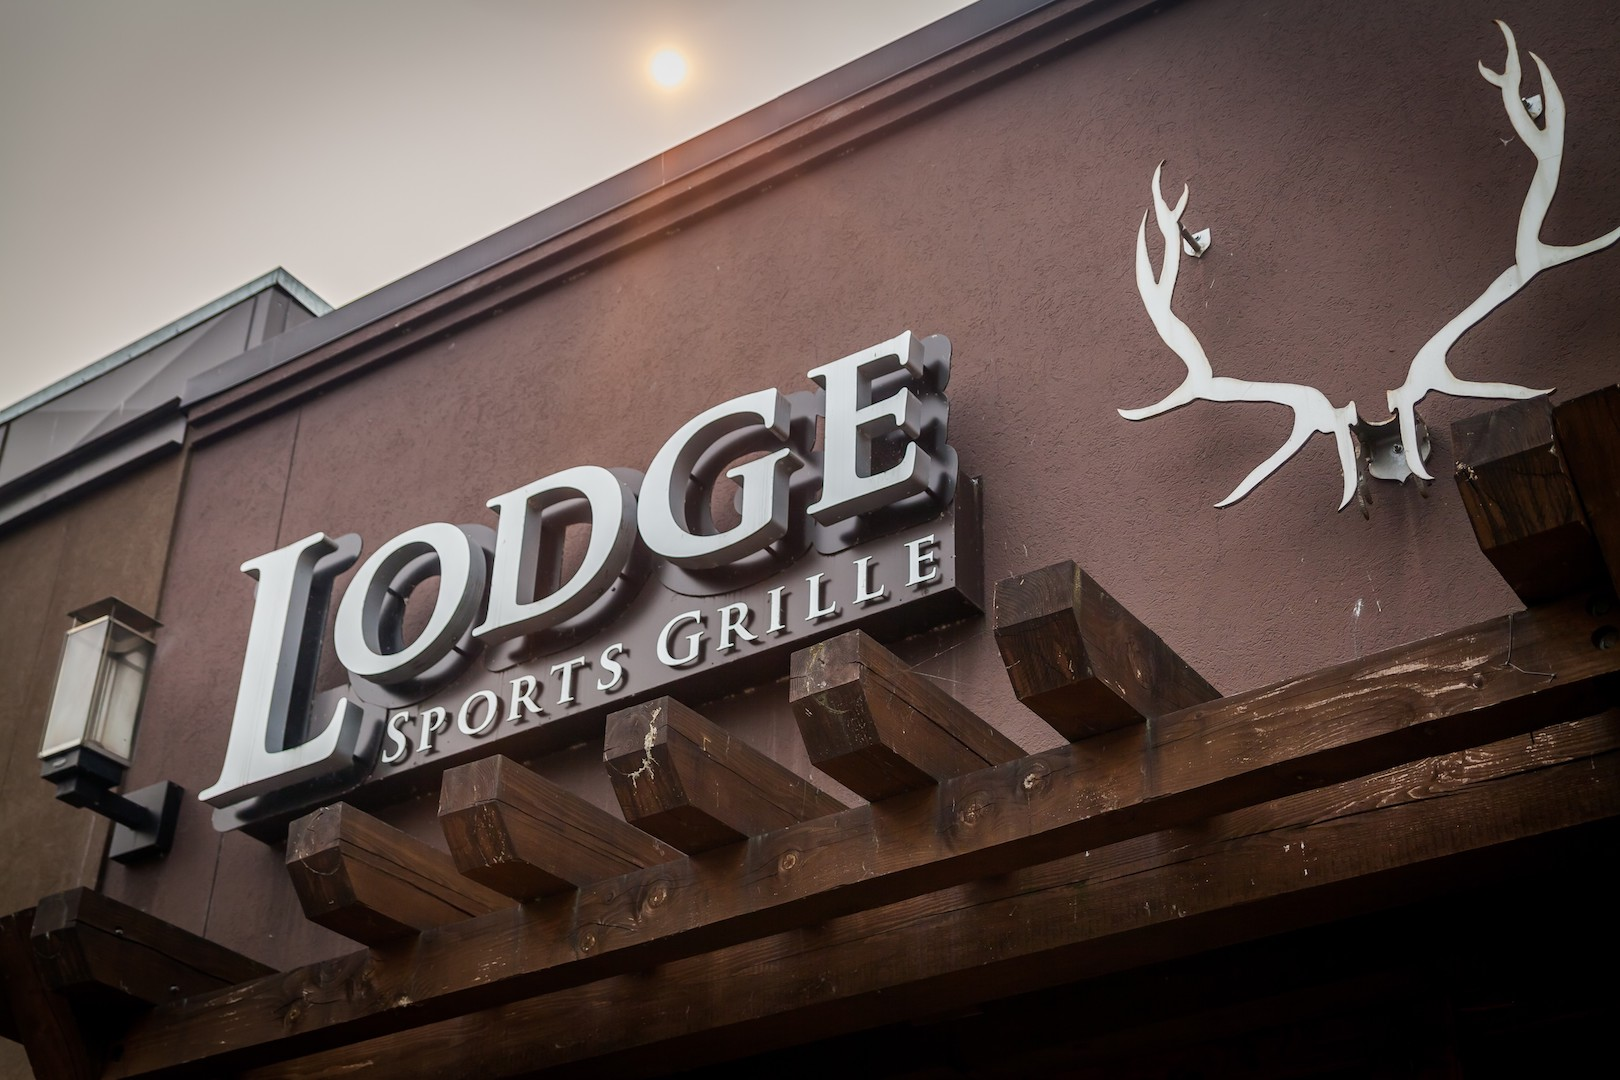 LODGE SPORTS GRILLE